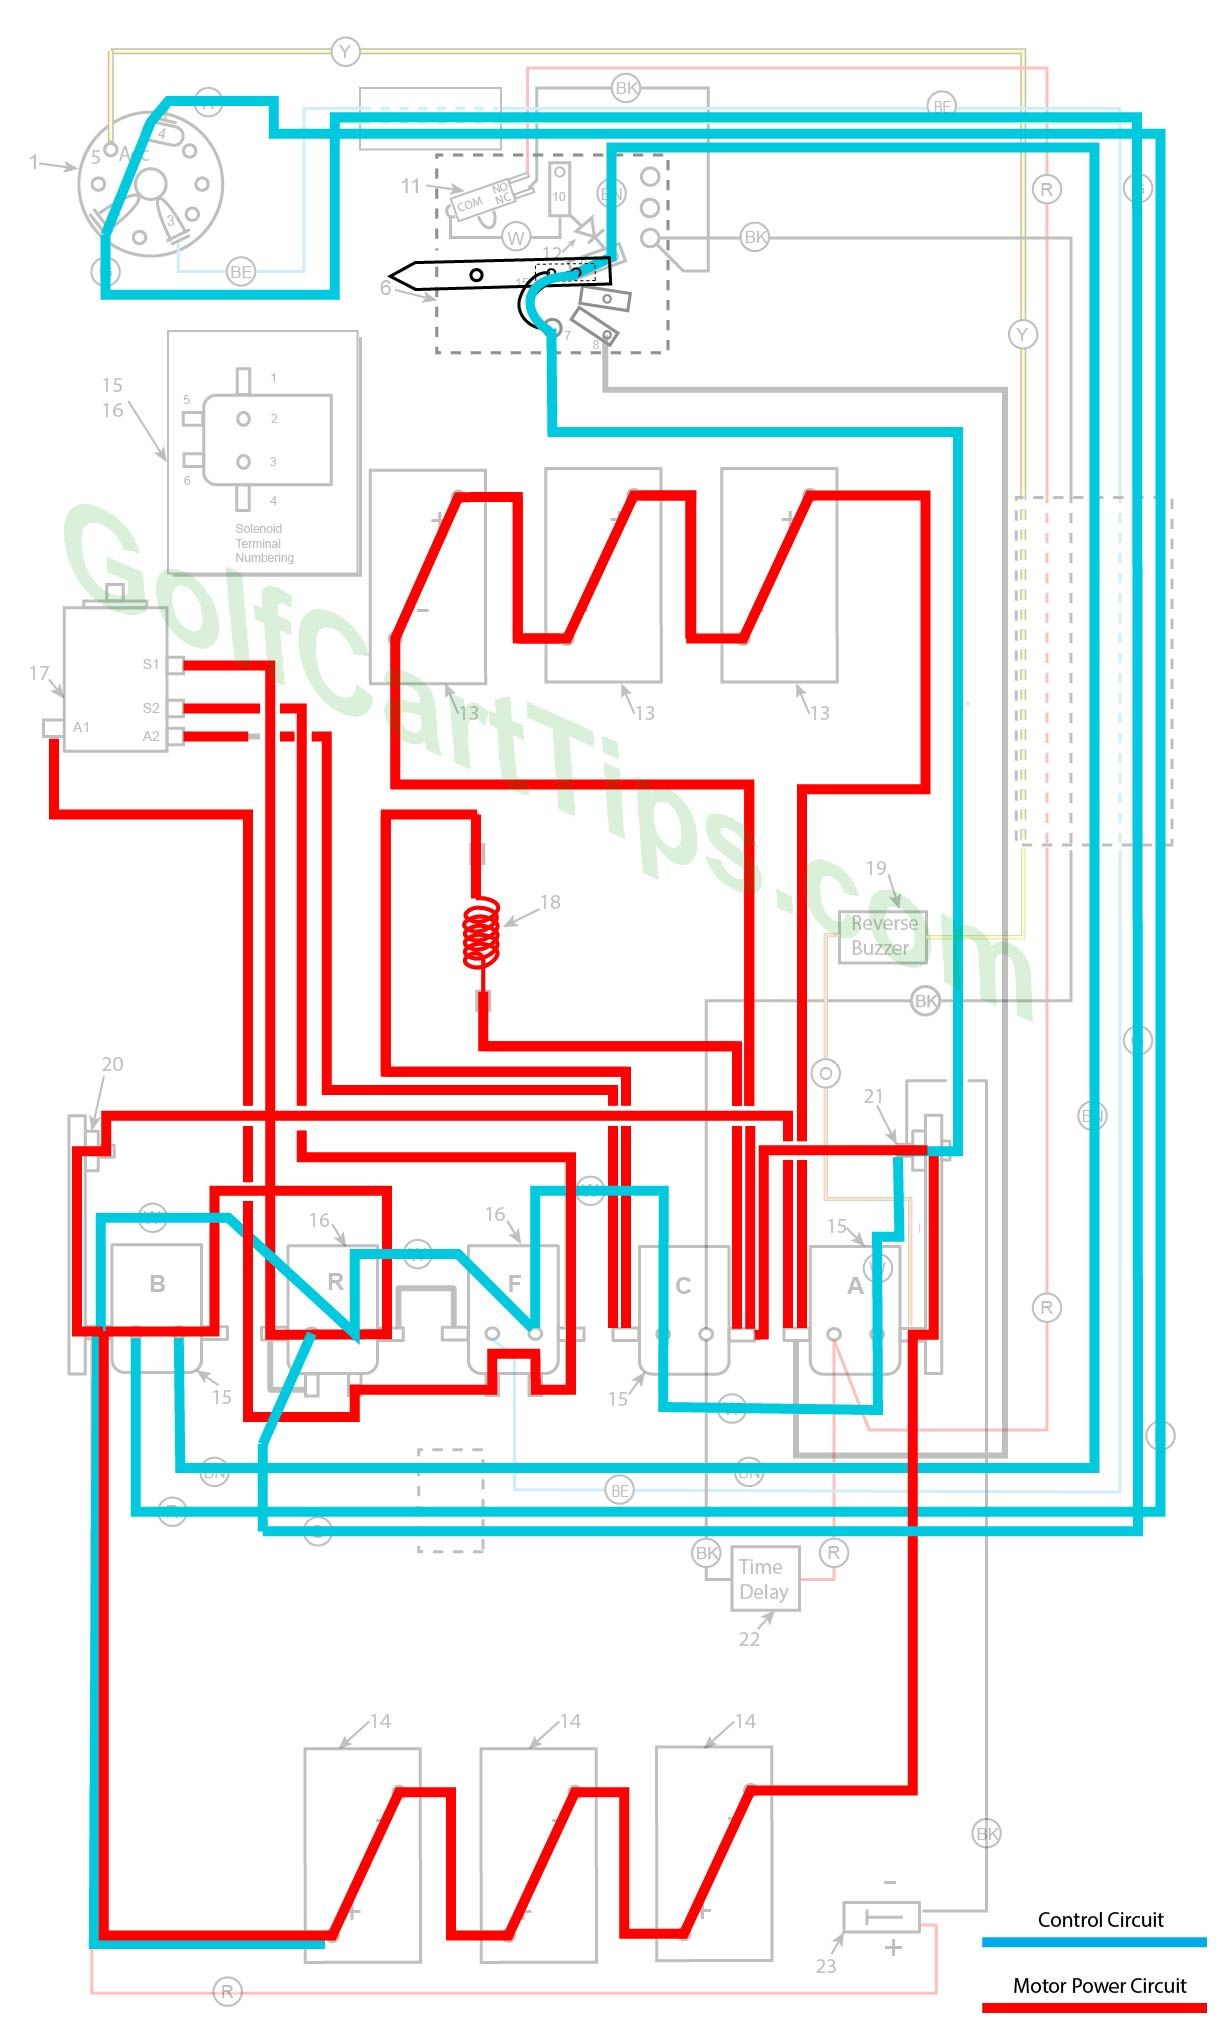 Wiring Diagram For Harley Davidson Golf Cart. Golf Cart ... on